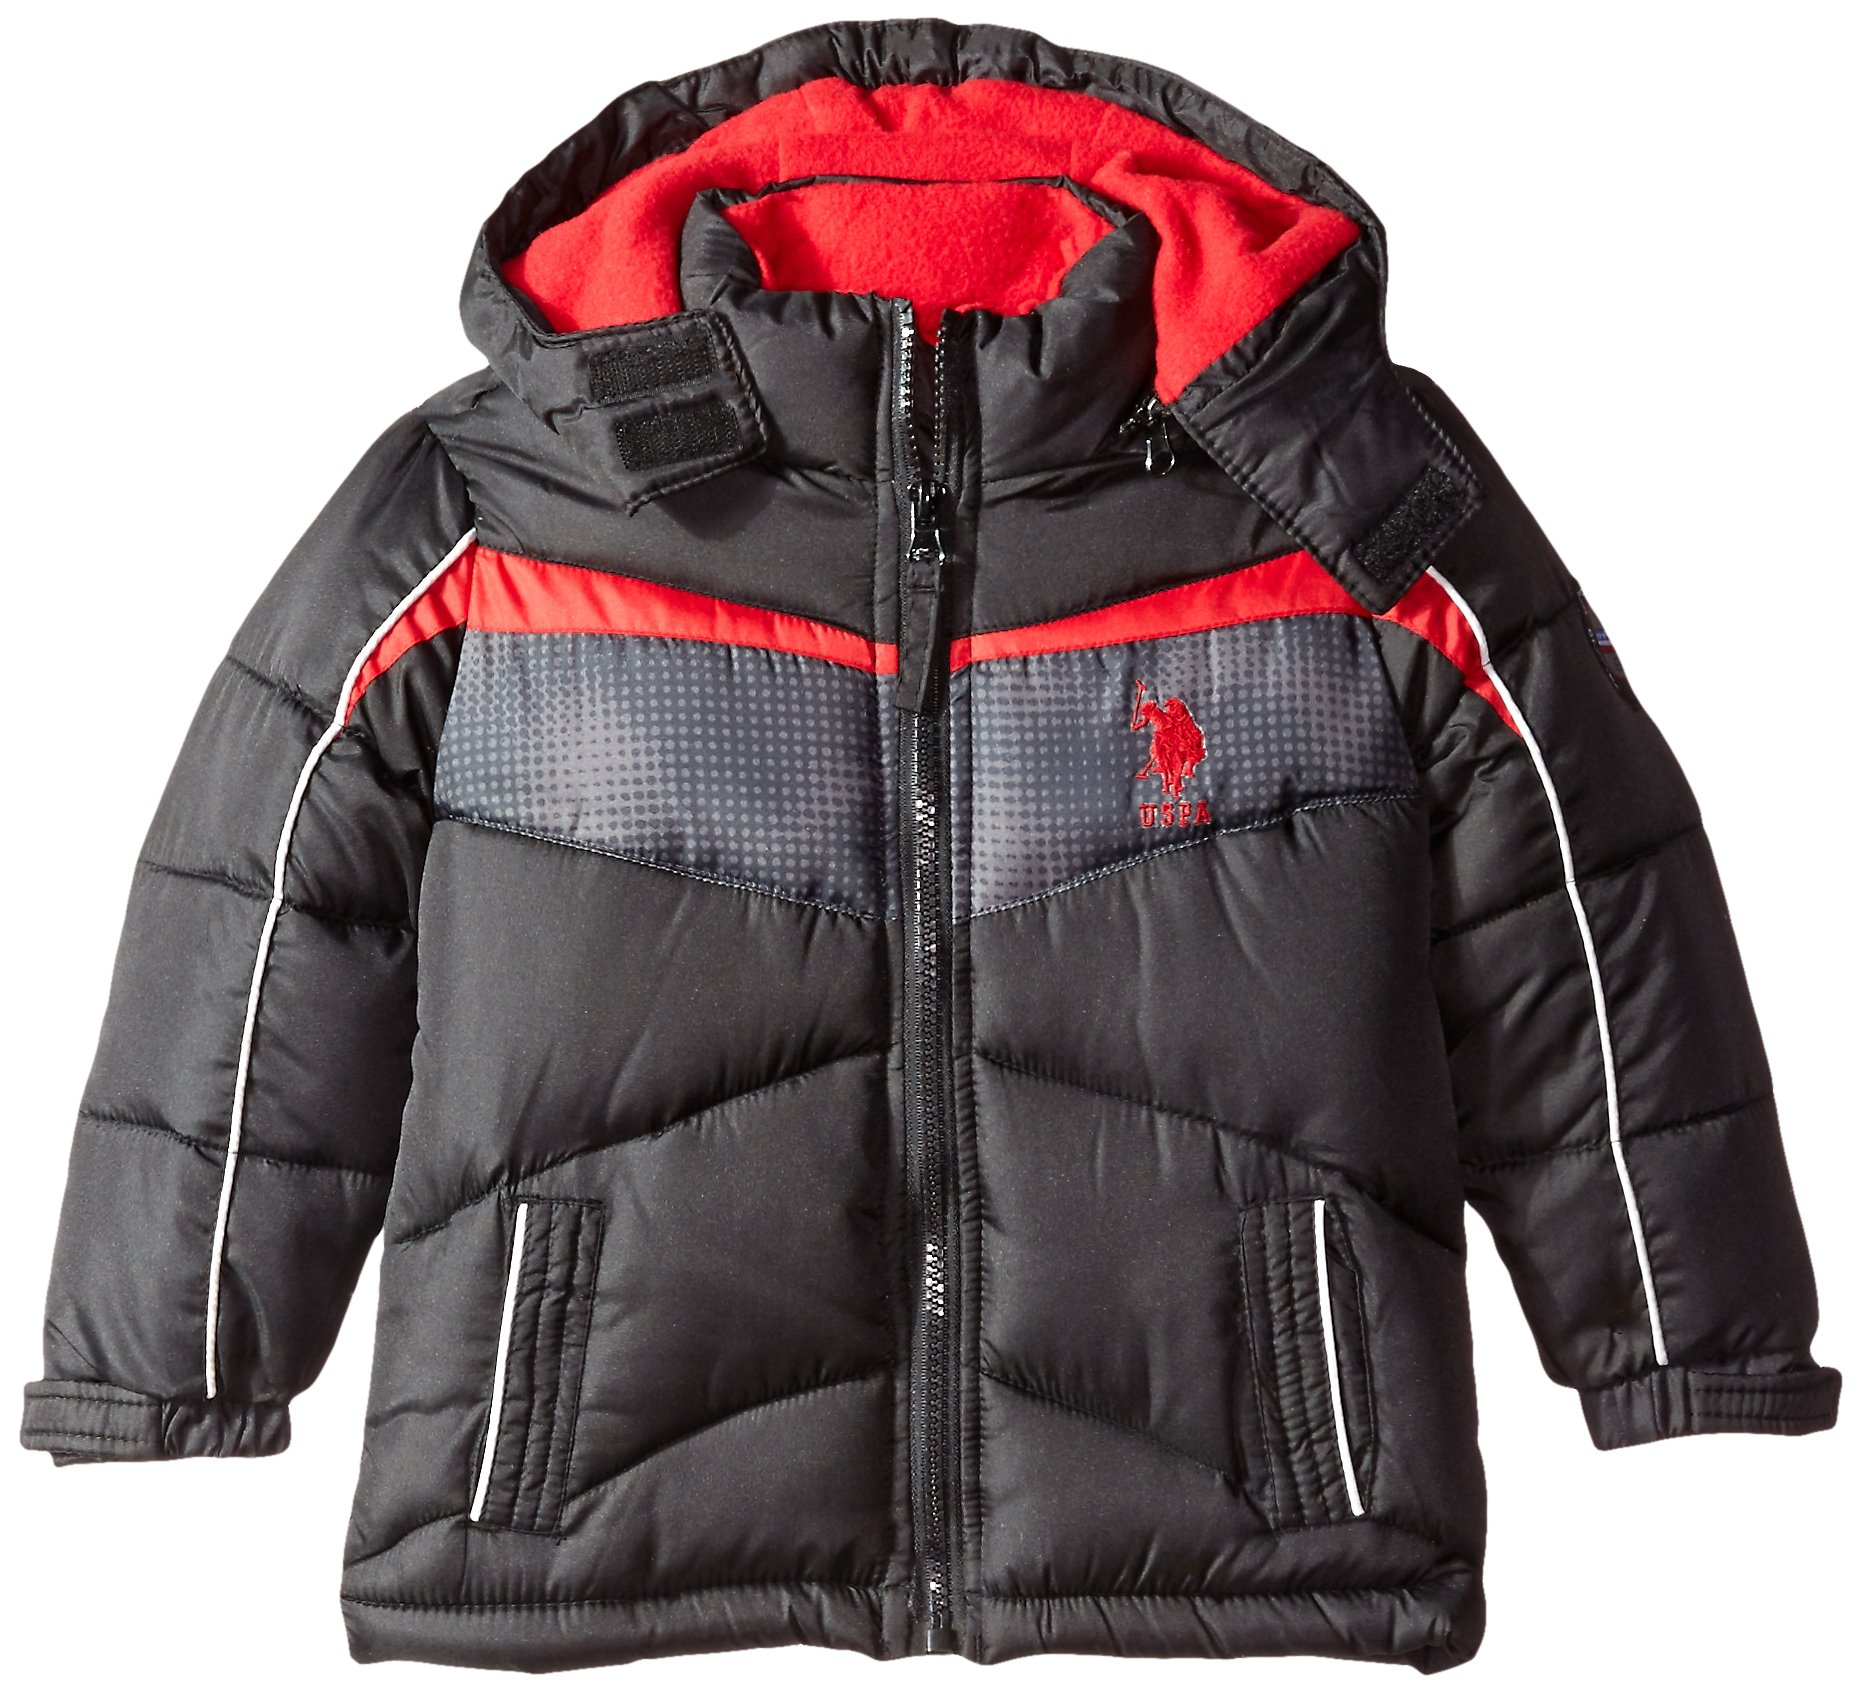 U.S. Polo Assn. Boys' Bubble Jacket (More Styles Available), Smooth Black, 2T